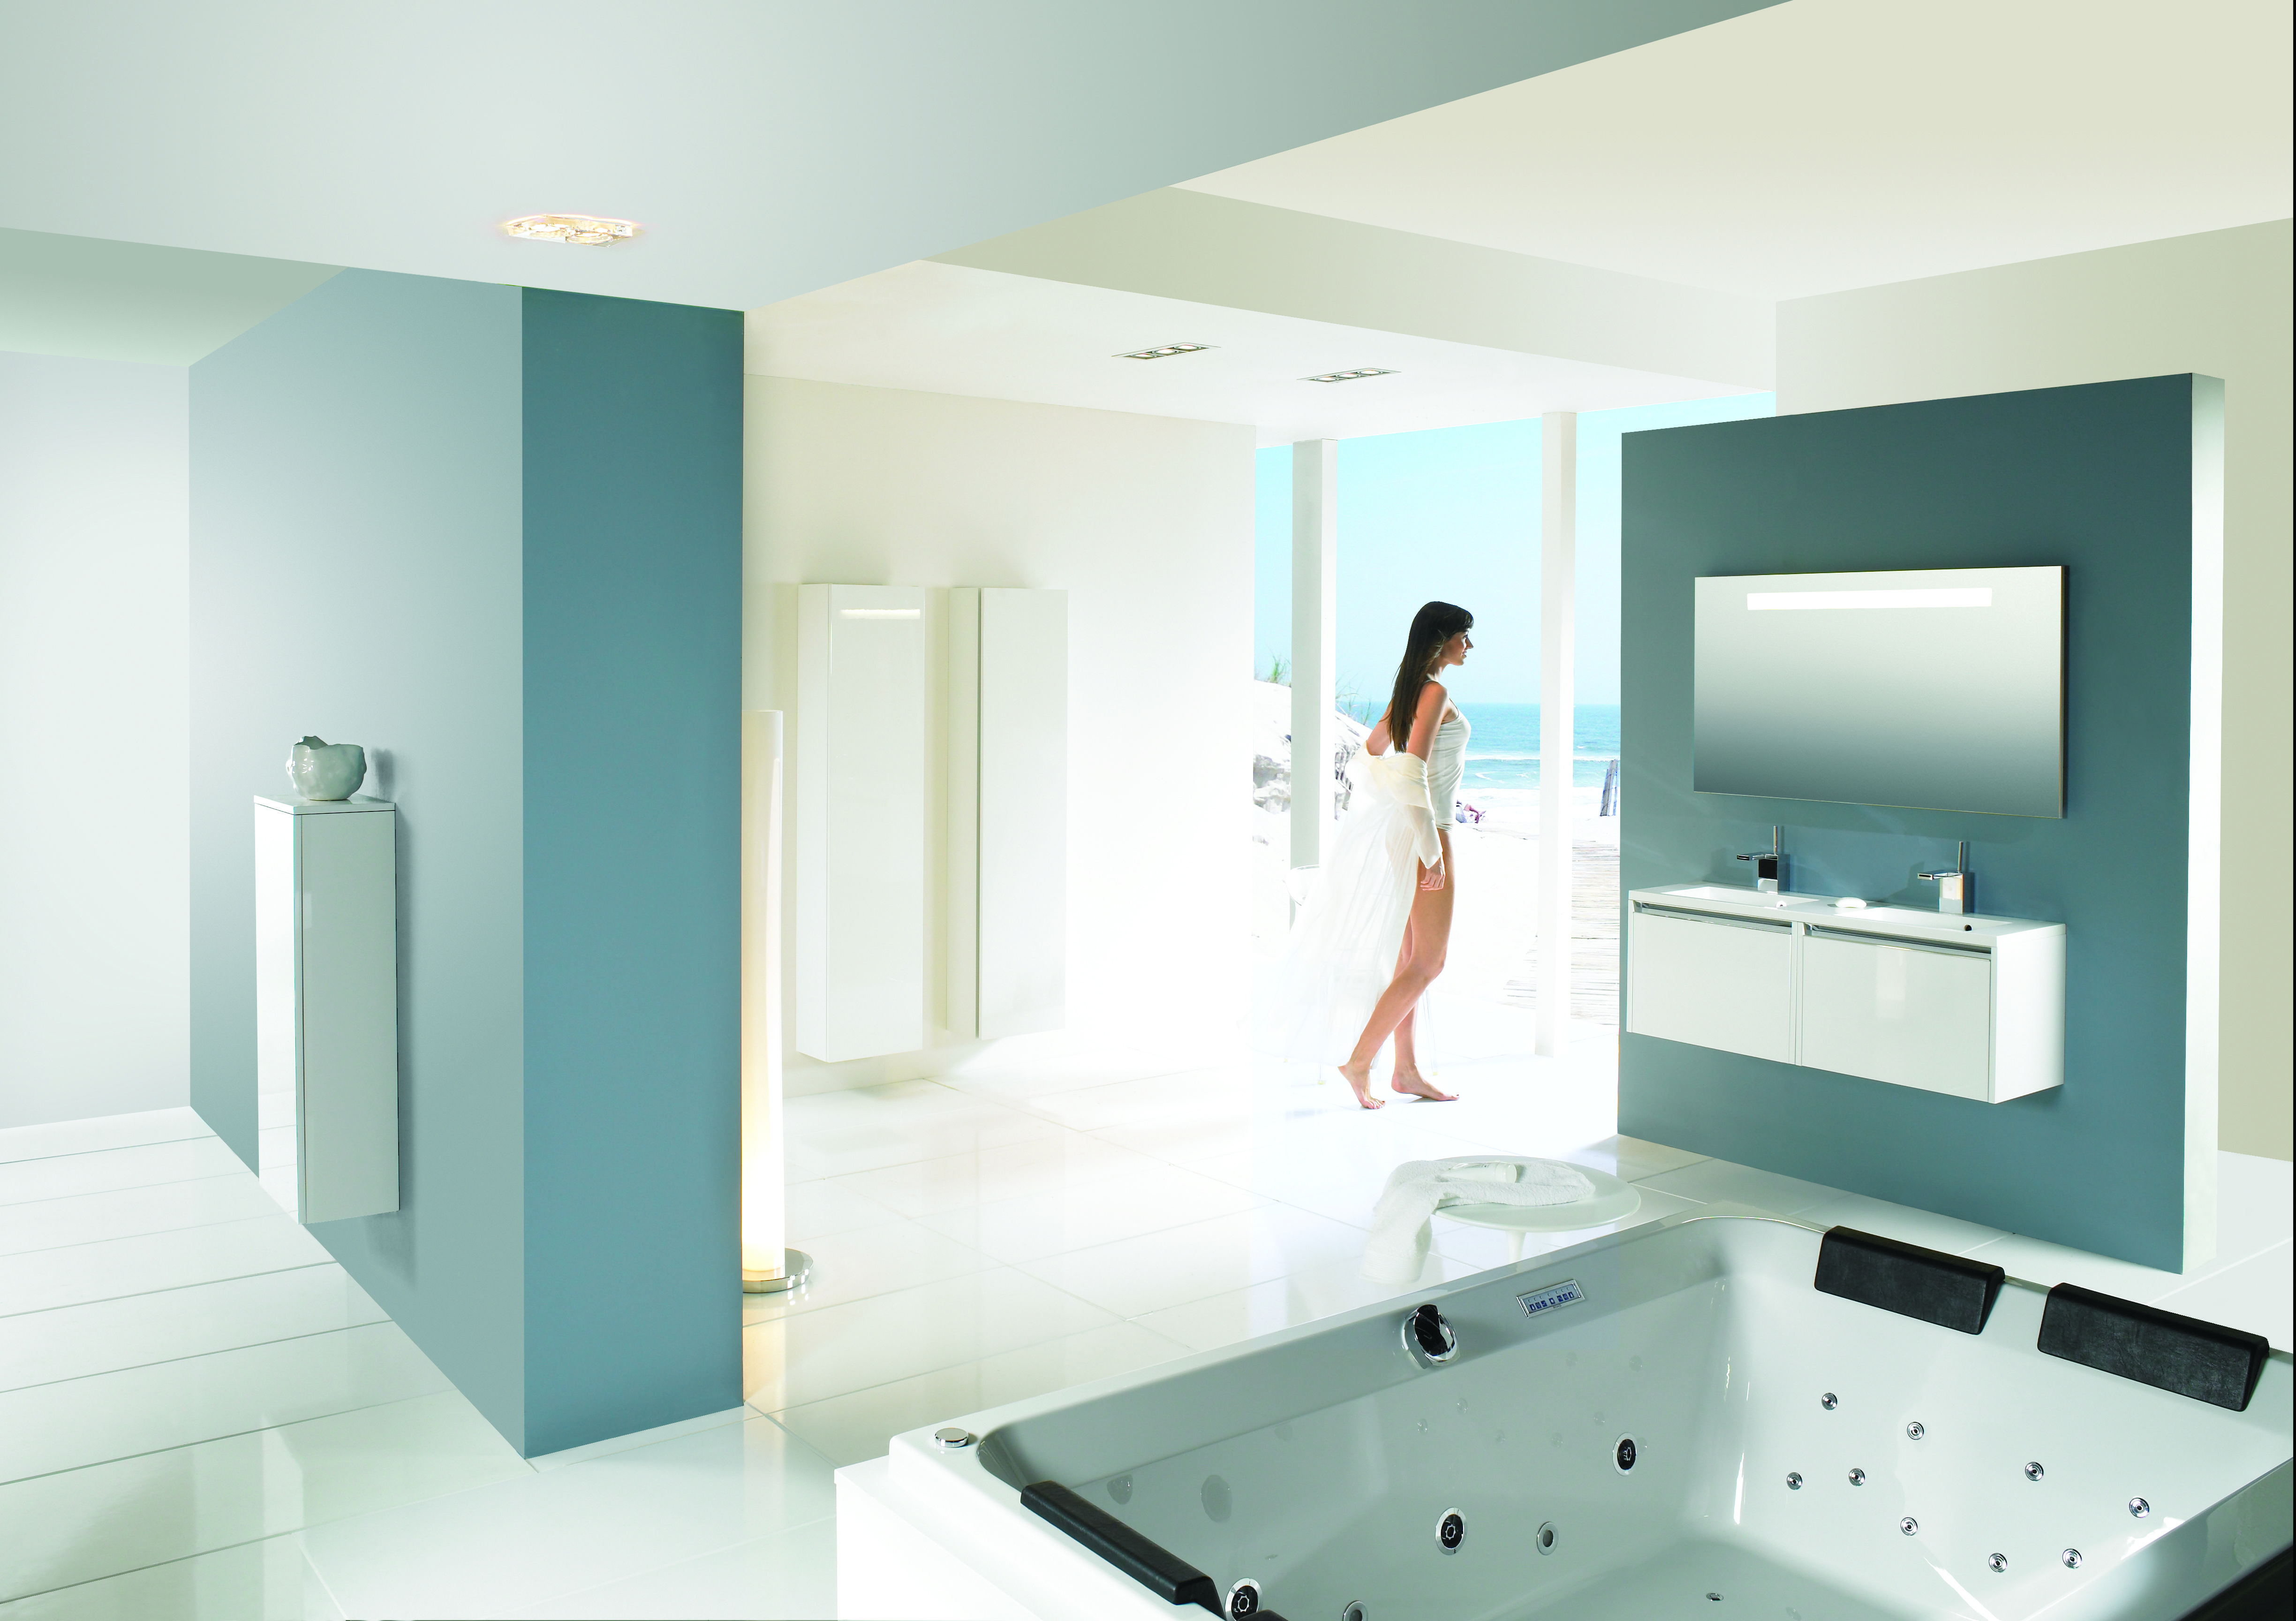 Big whirlpool / bubble bath for 2 persons | RIHO baden | Pinterest ...